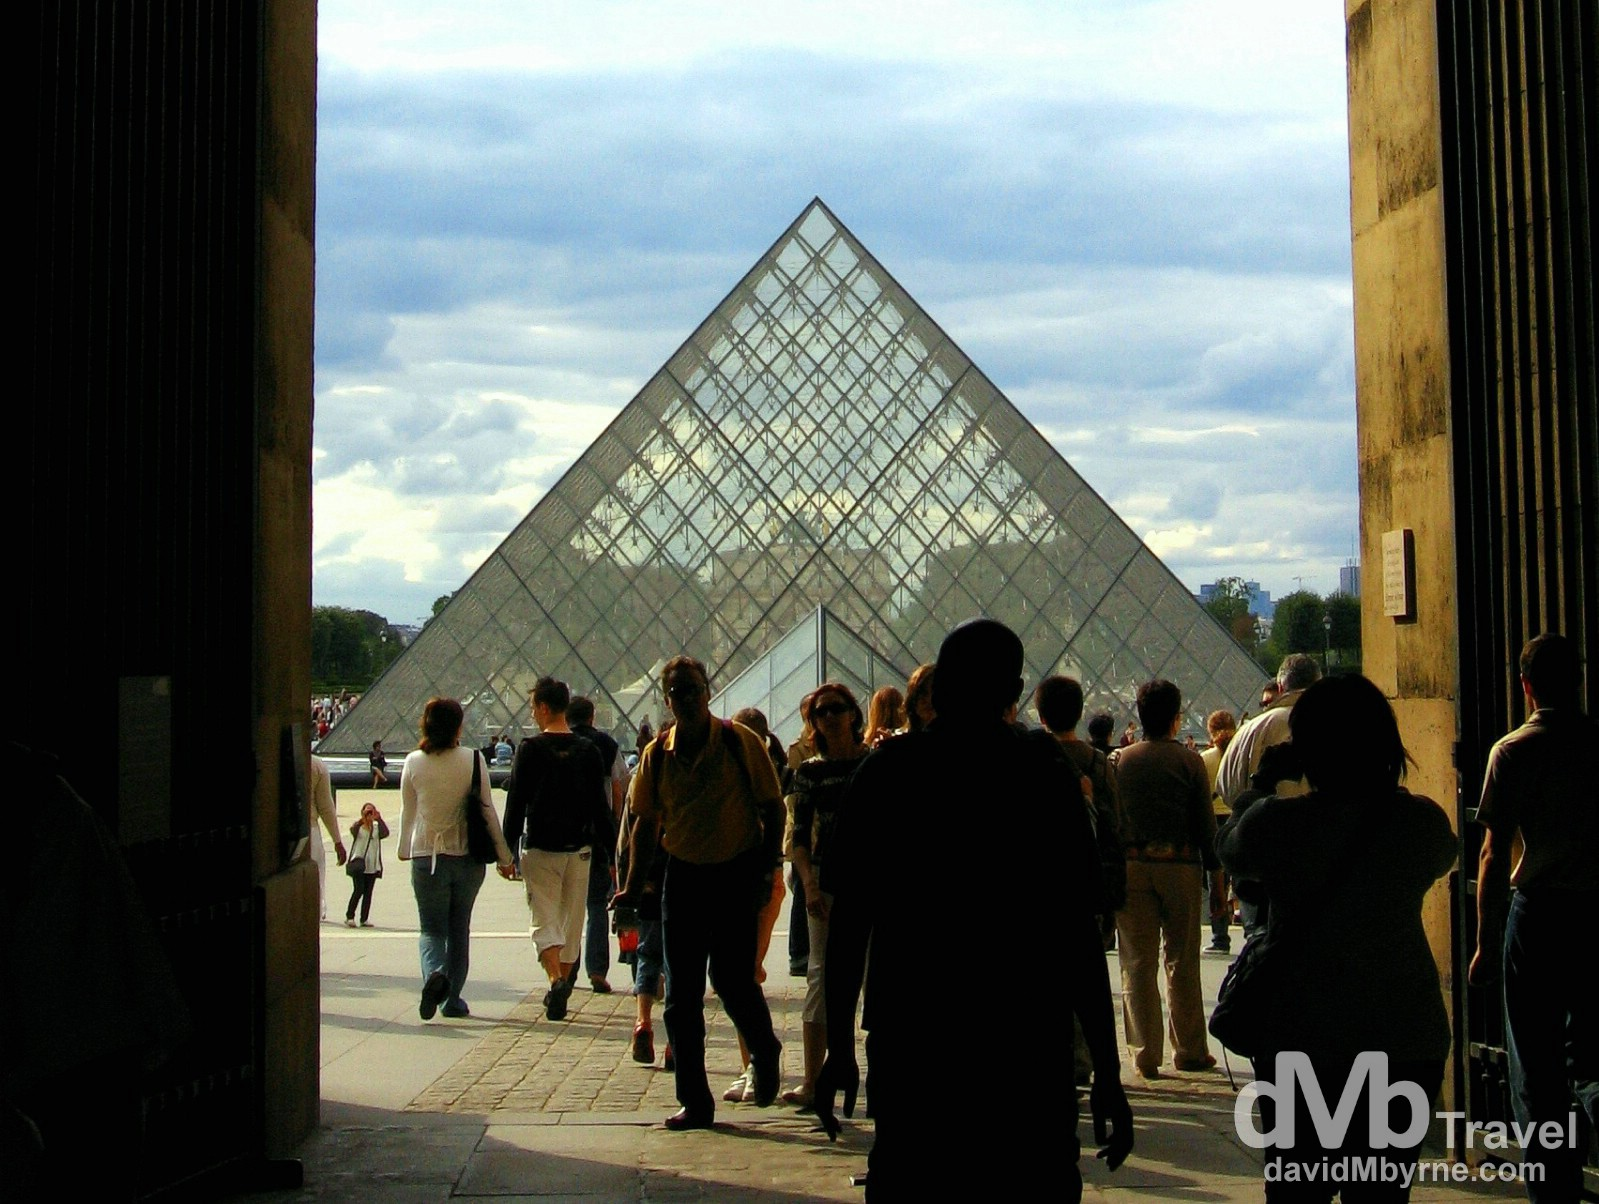 The Louvre Pyramid in the centre of the Napoleon Courtyard as seen through an opening in the Palais du Louvre (Louvre Palace), Paris, France. August 18th 2007